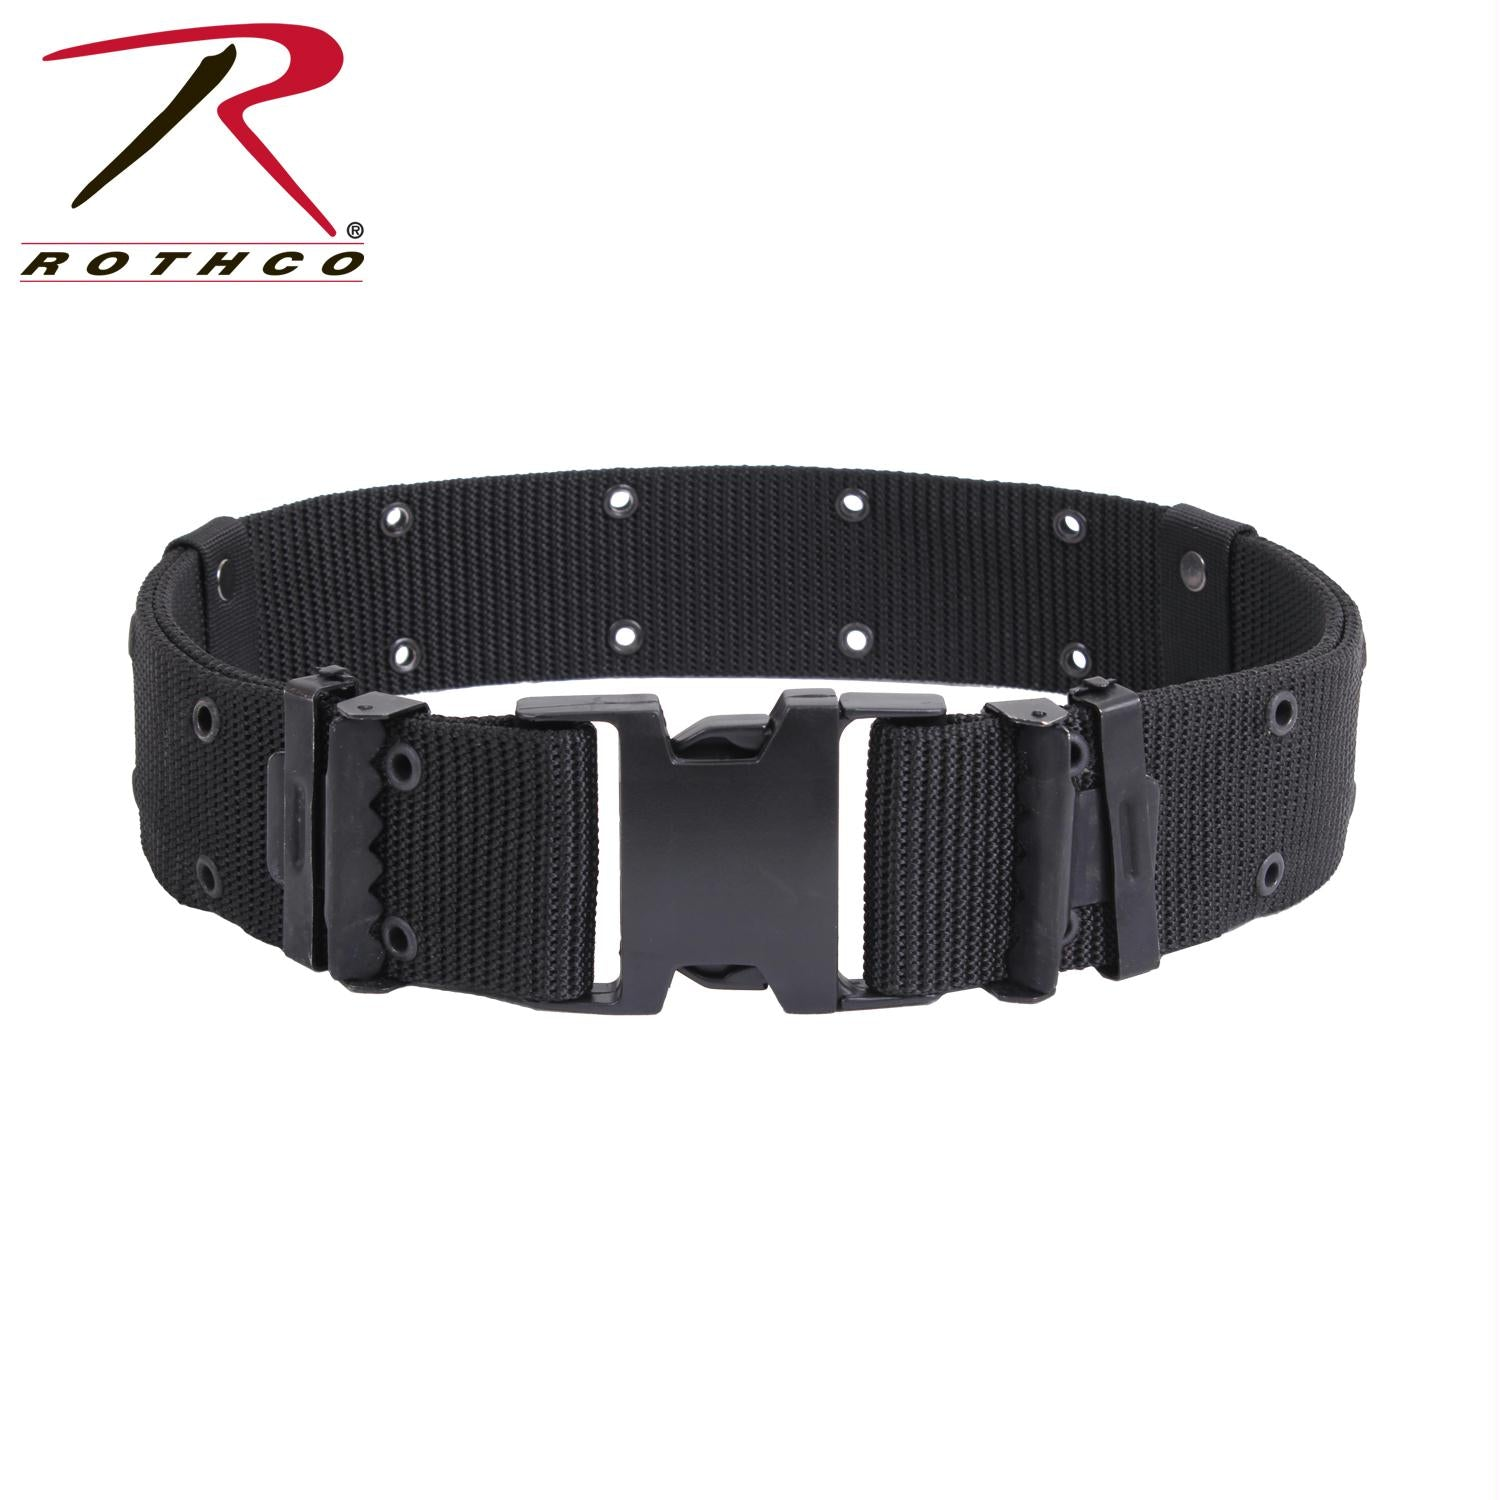 Rothco New Issue Marine Corps Style Quick Release Pistol Belts - Black / M